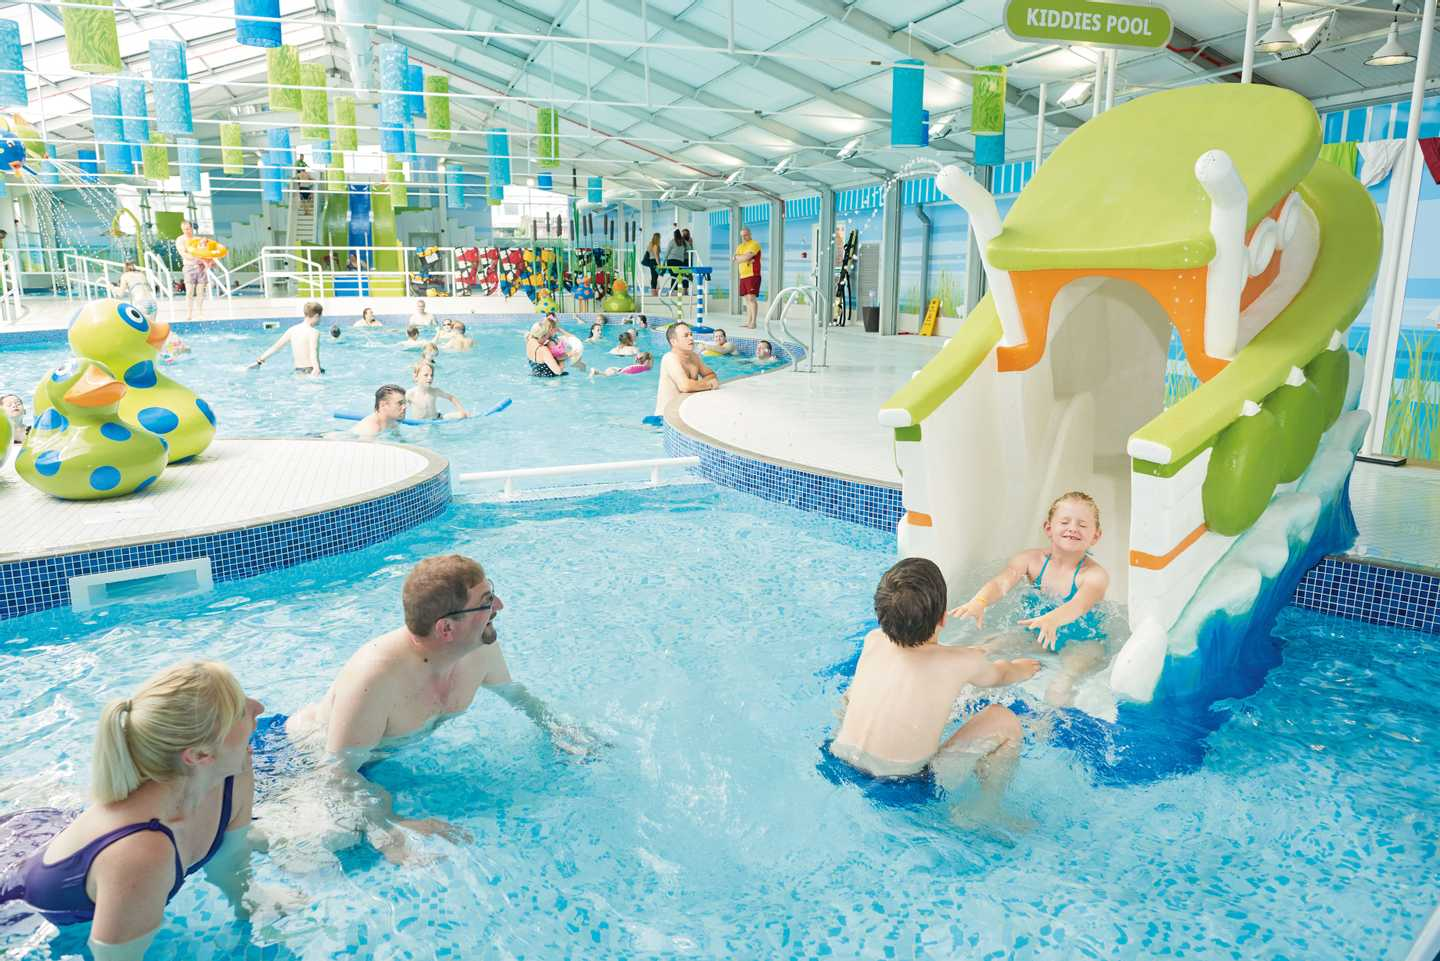 Guests playing in the indoor pool